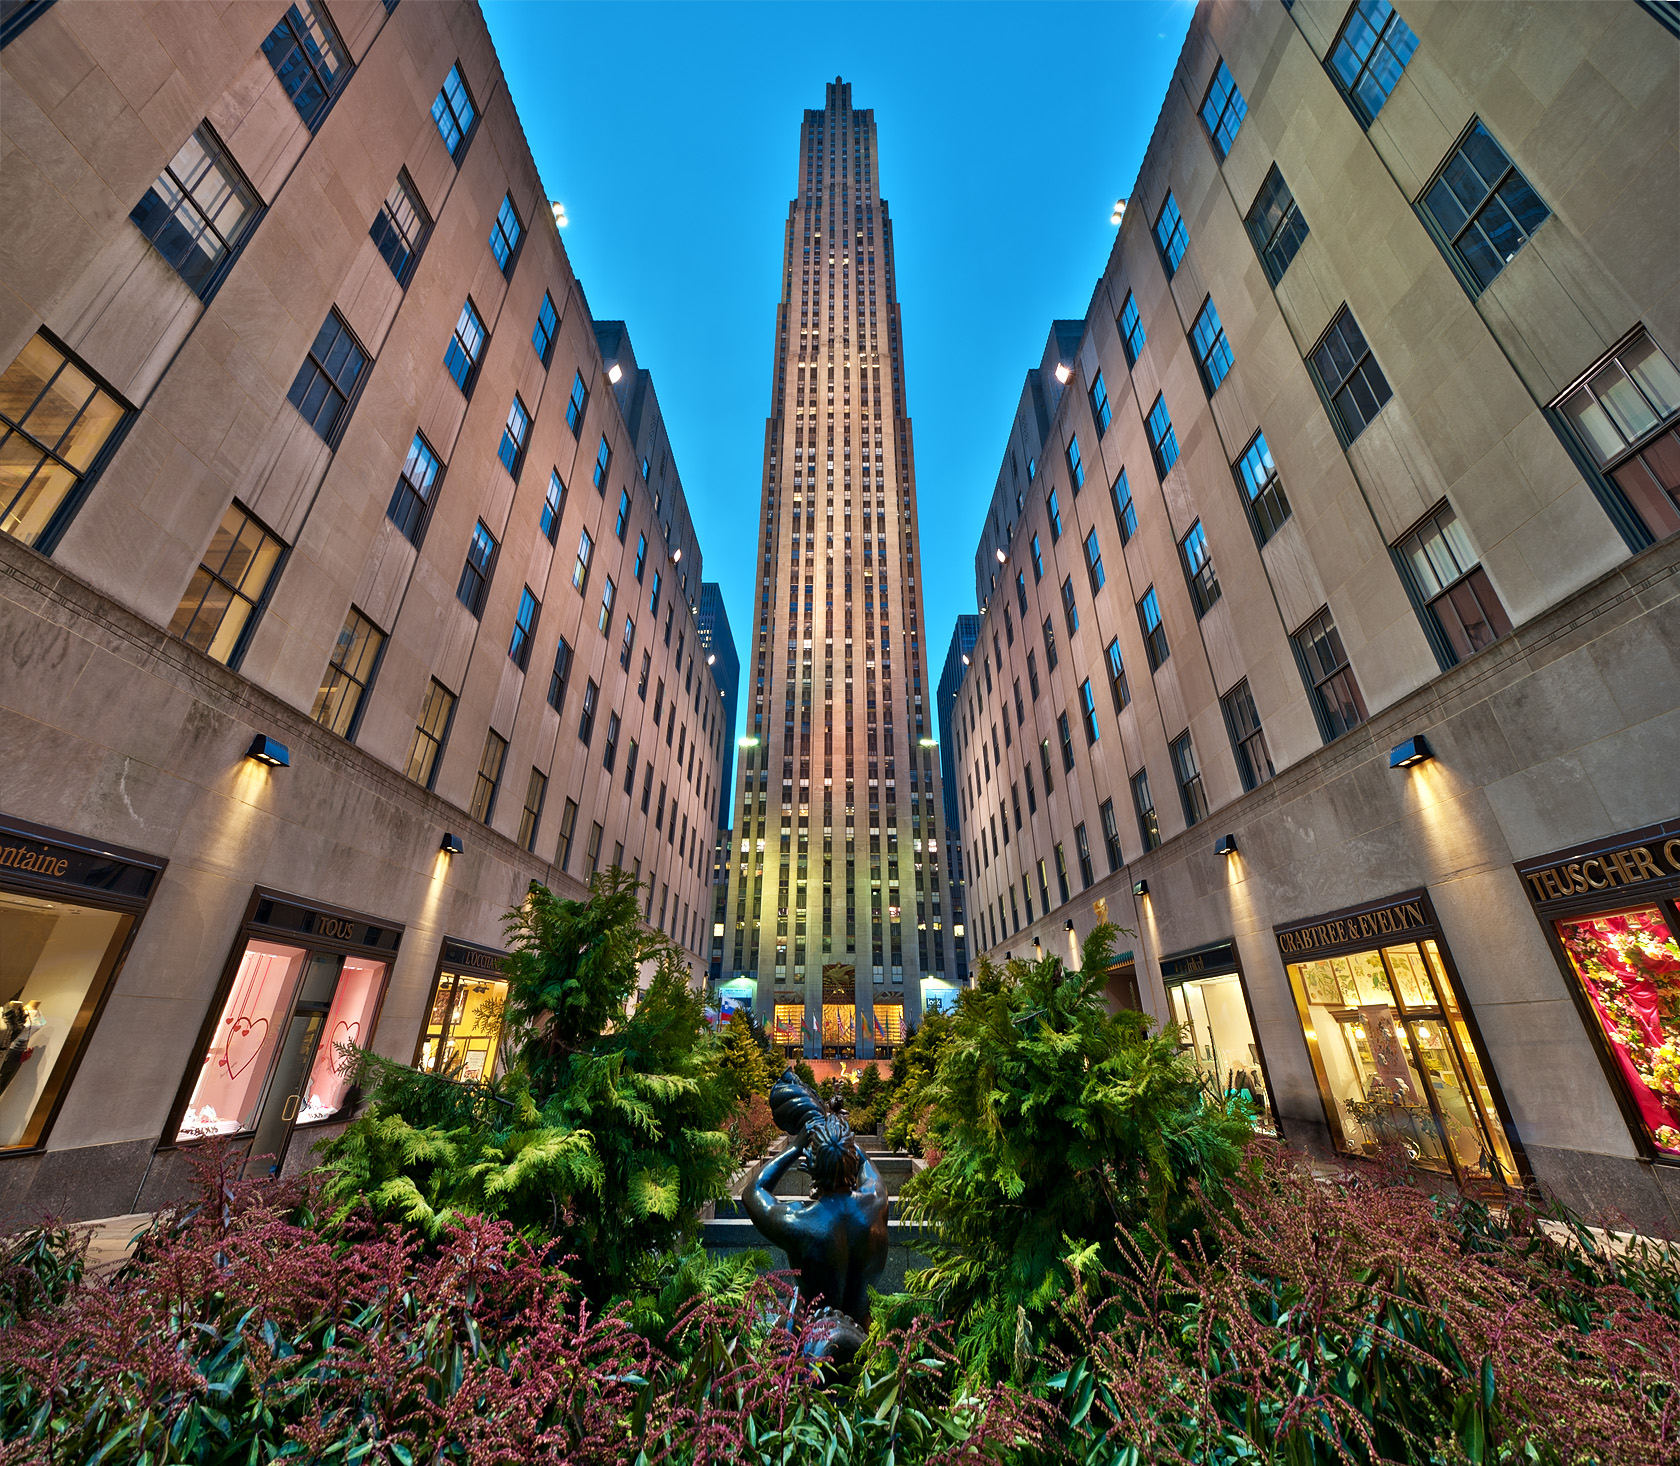 the-welcome-blog-tours-and-sightseeing-in-new-york-city-rockefeller-center